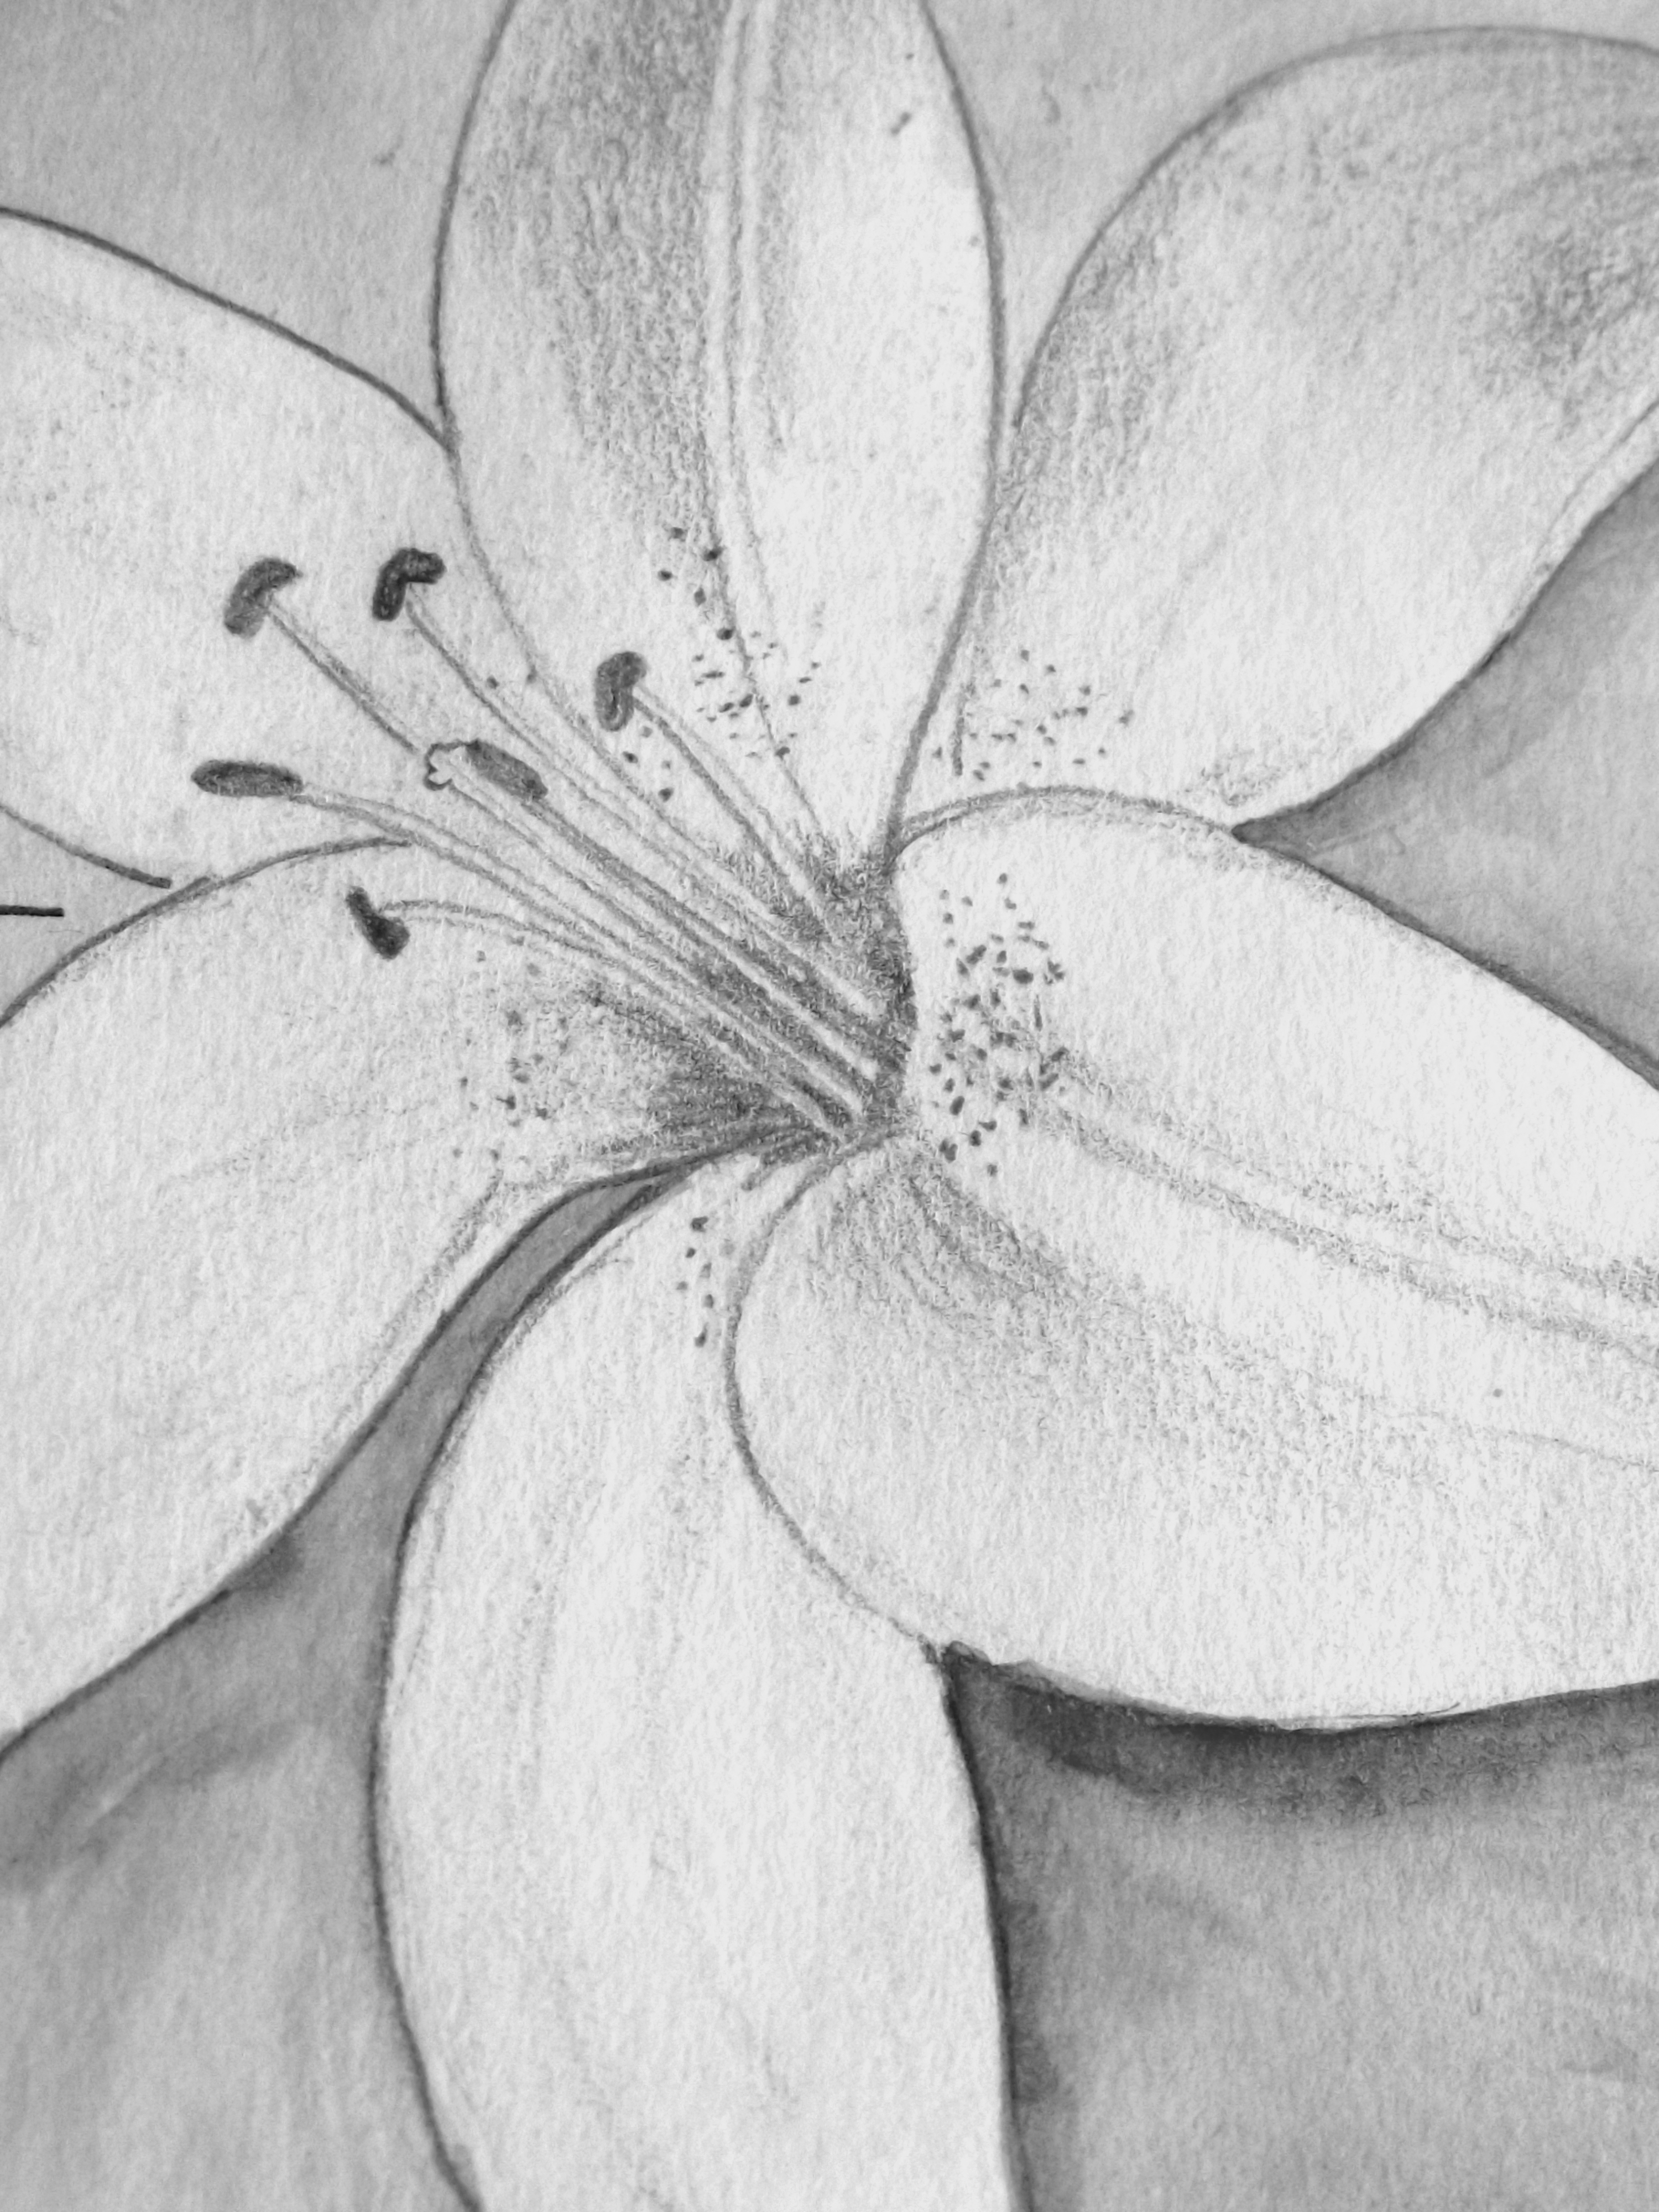 Drawn still life lily Pencil of Lily Pencil of